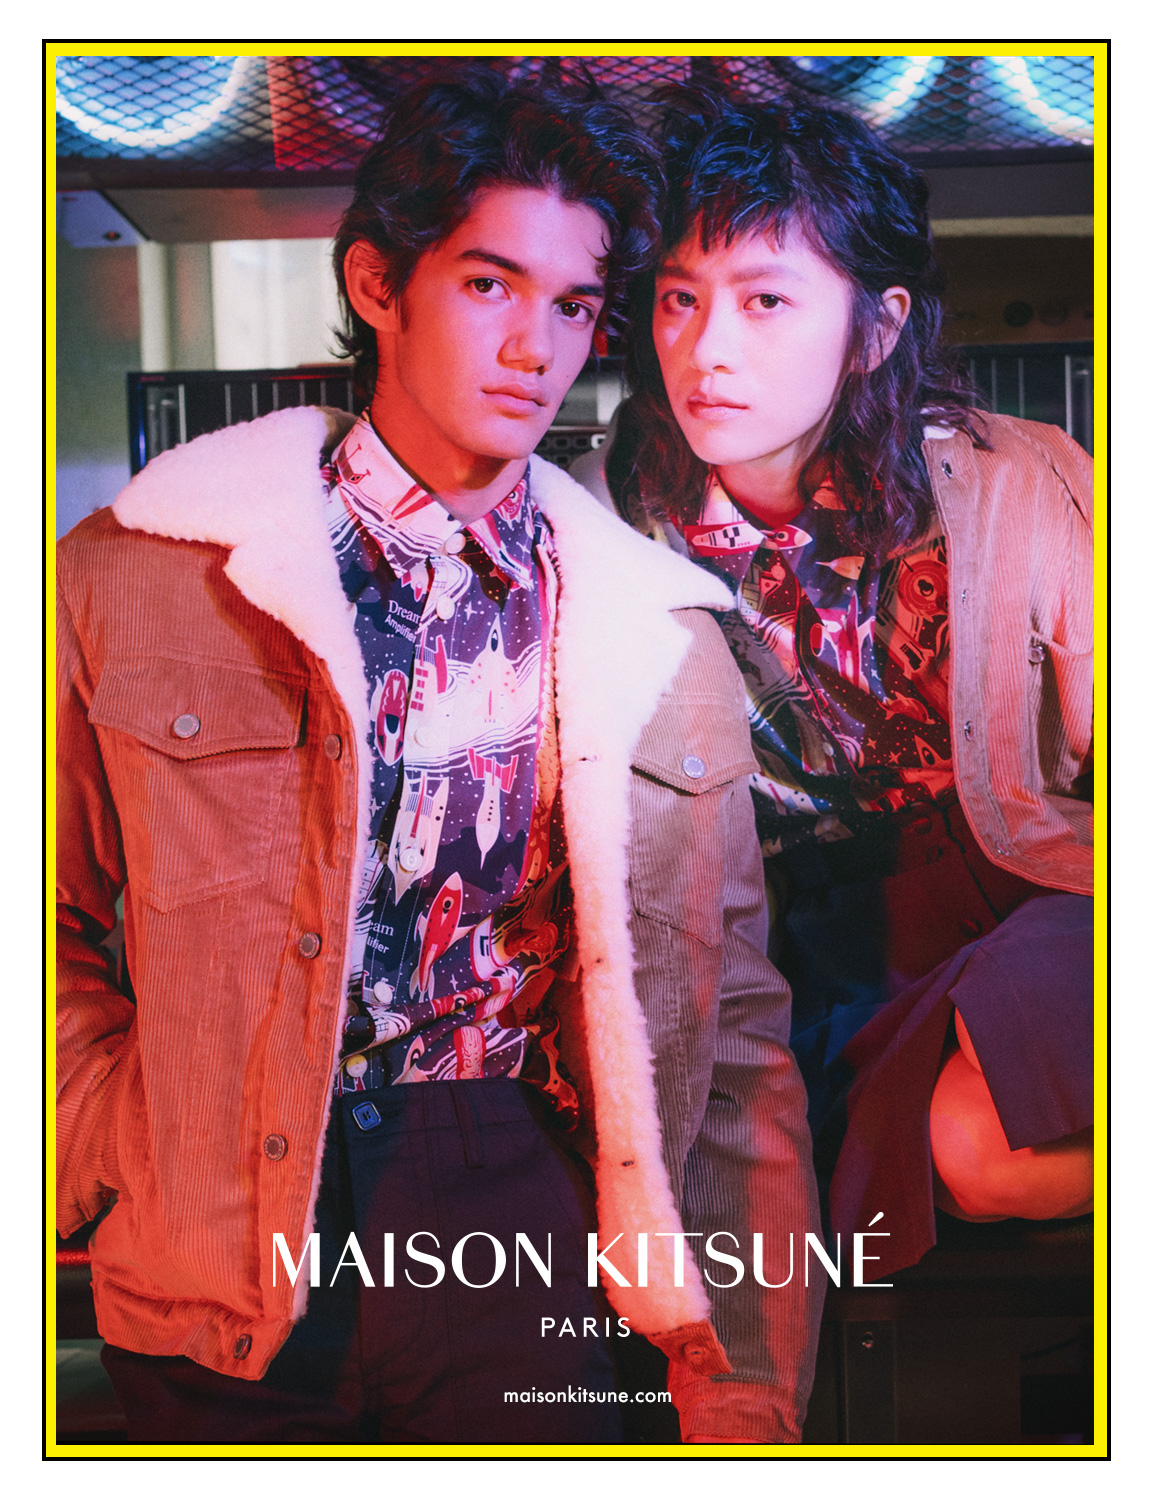 Maison Kitsune  Dream amplifier Pairs, France